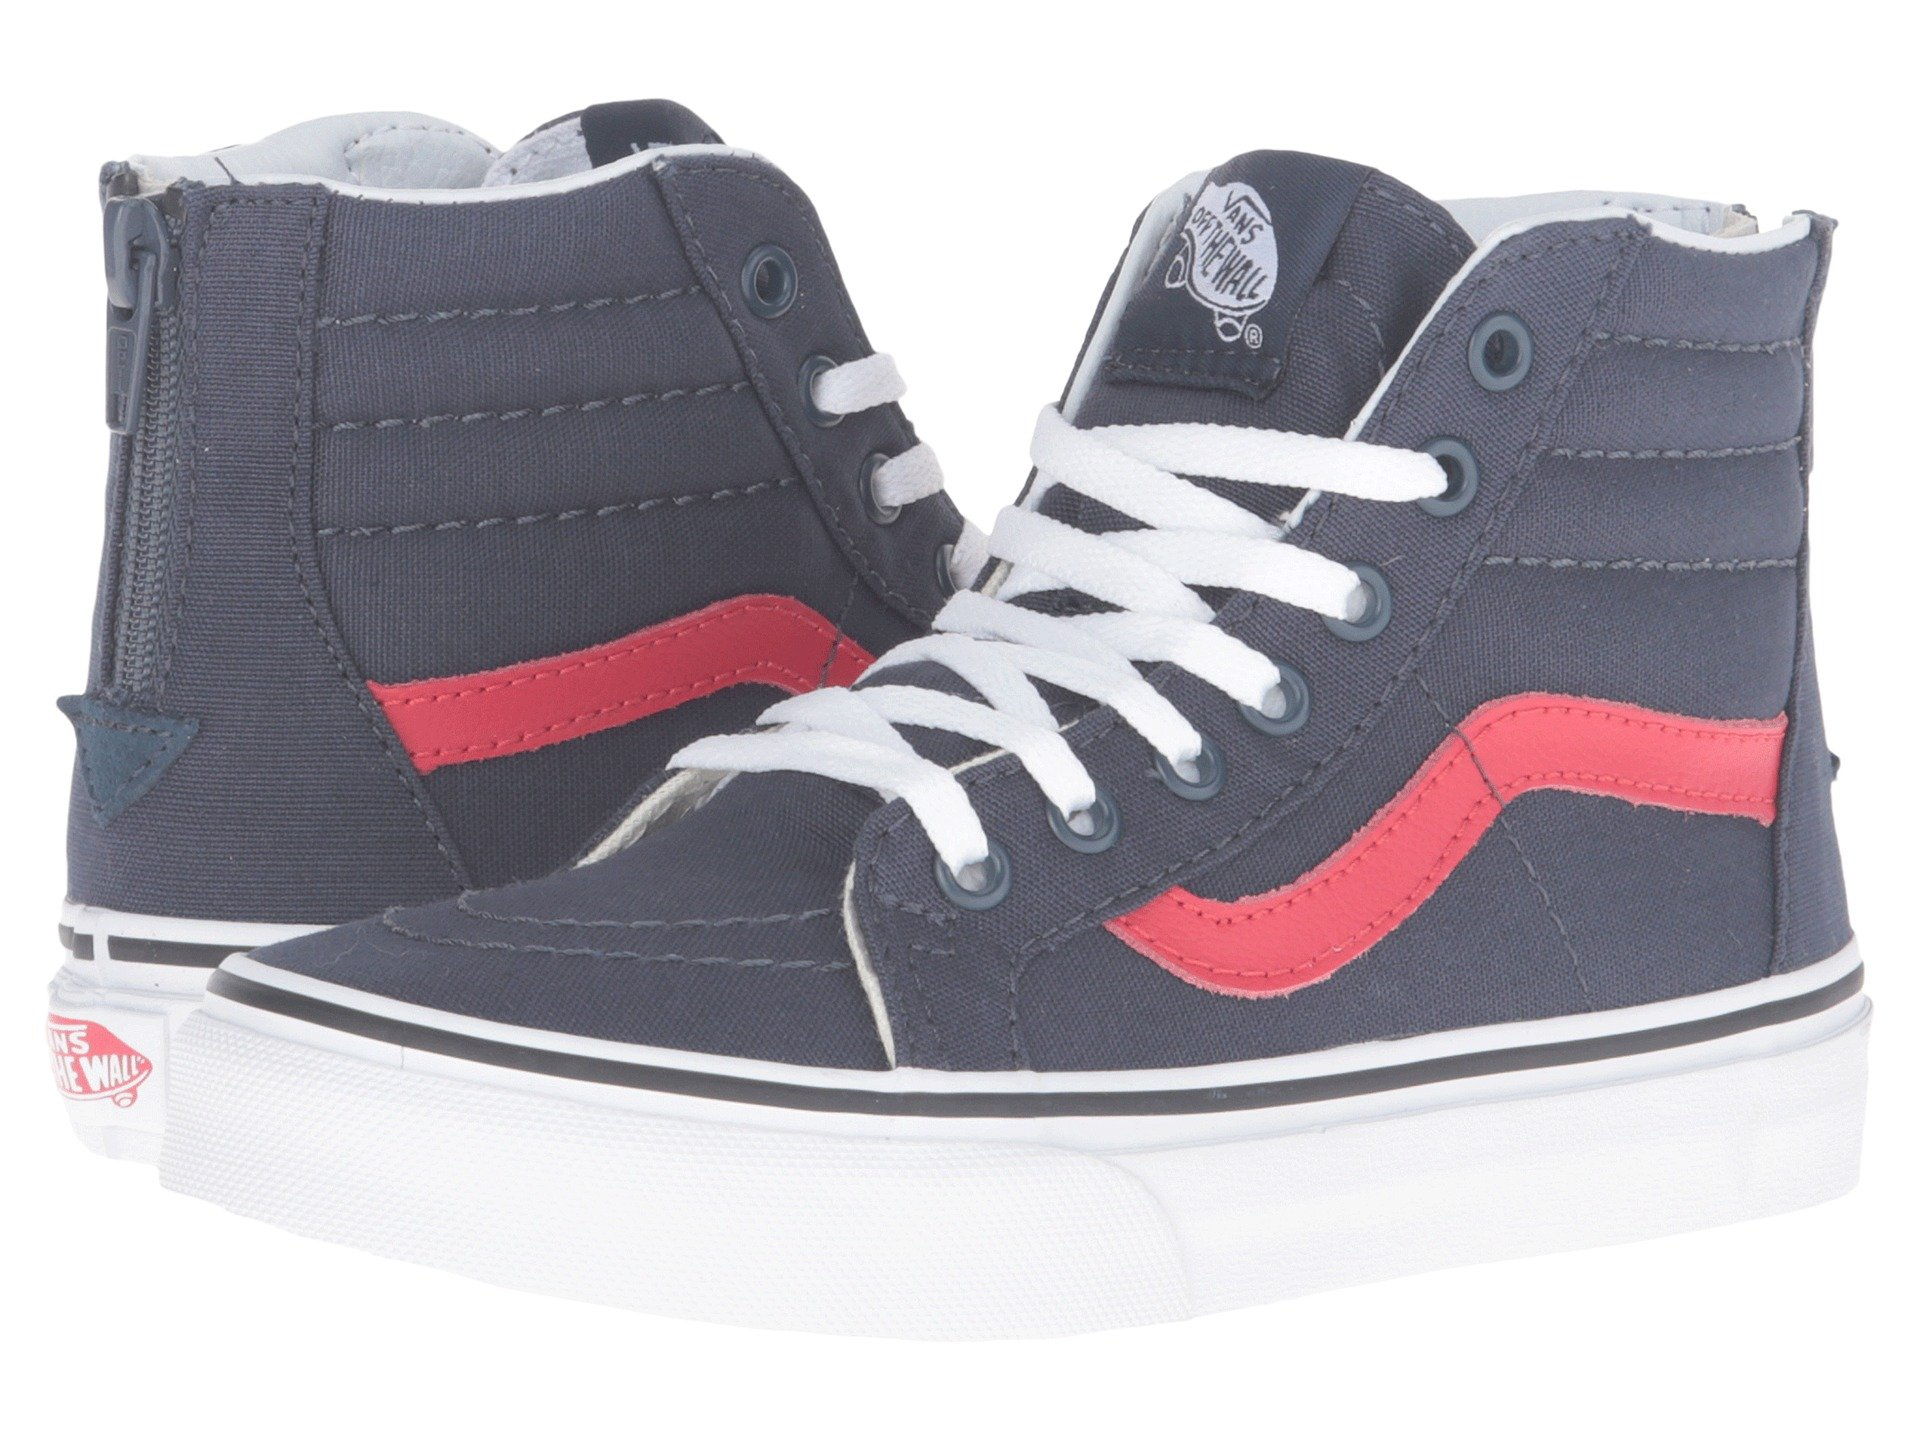 eb4184cf59 VANS Kids Sk8-Hi Zip (Varsity) Navy/True White VN000W9WJSM Youth 11